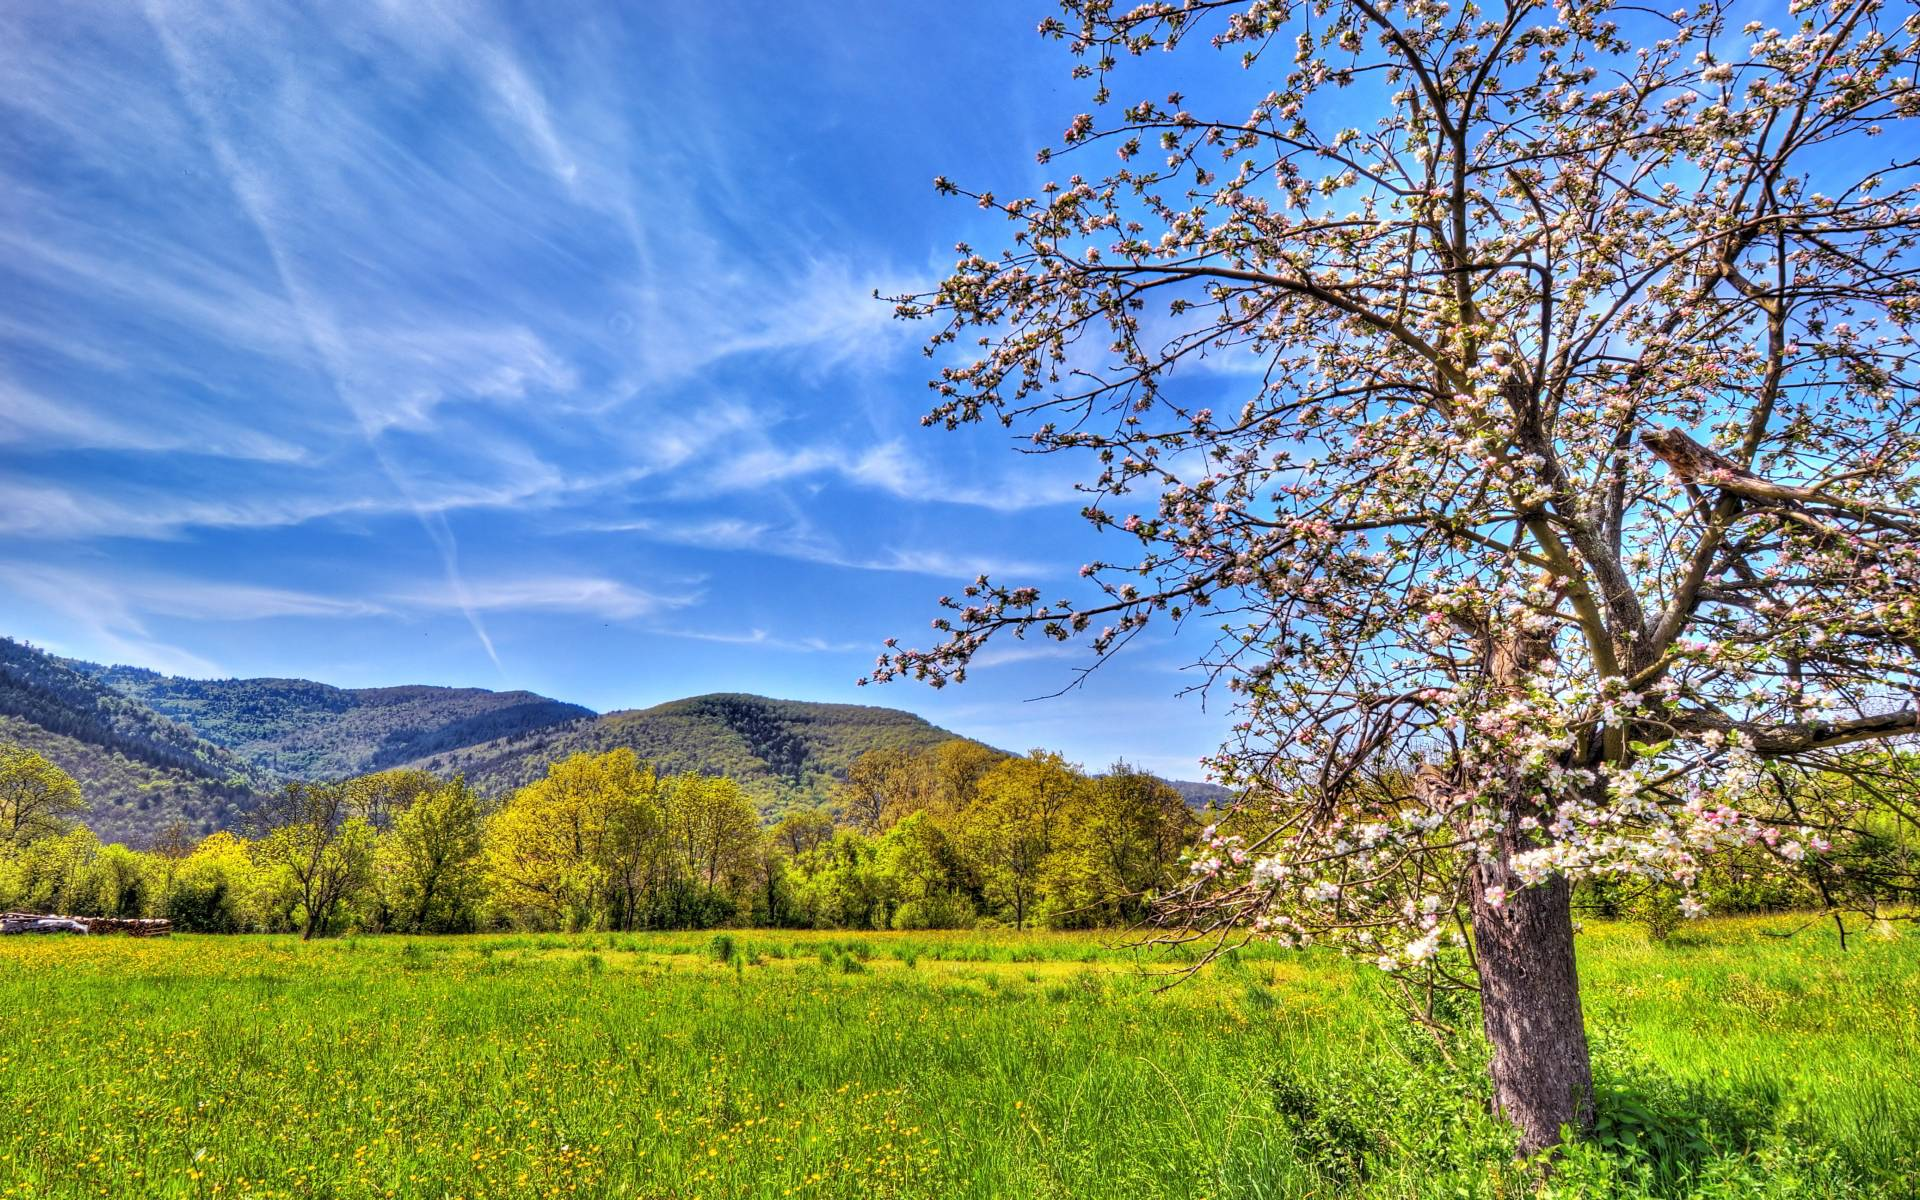 spring trees background - photo #20